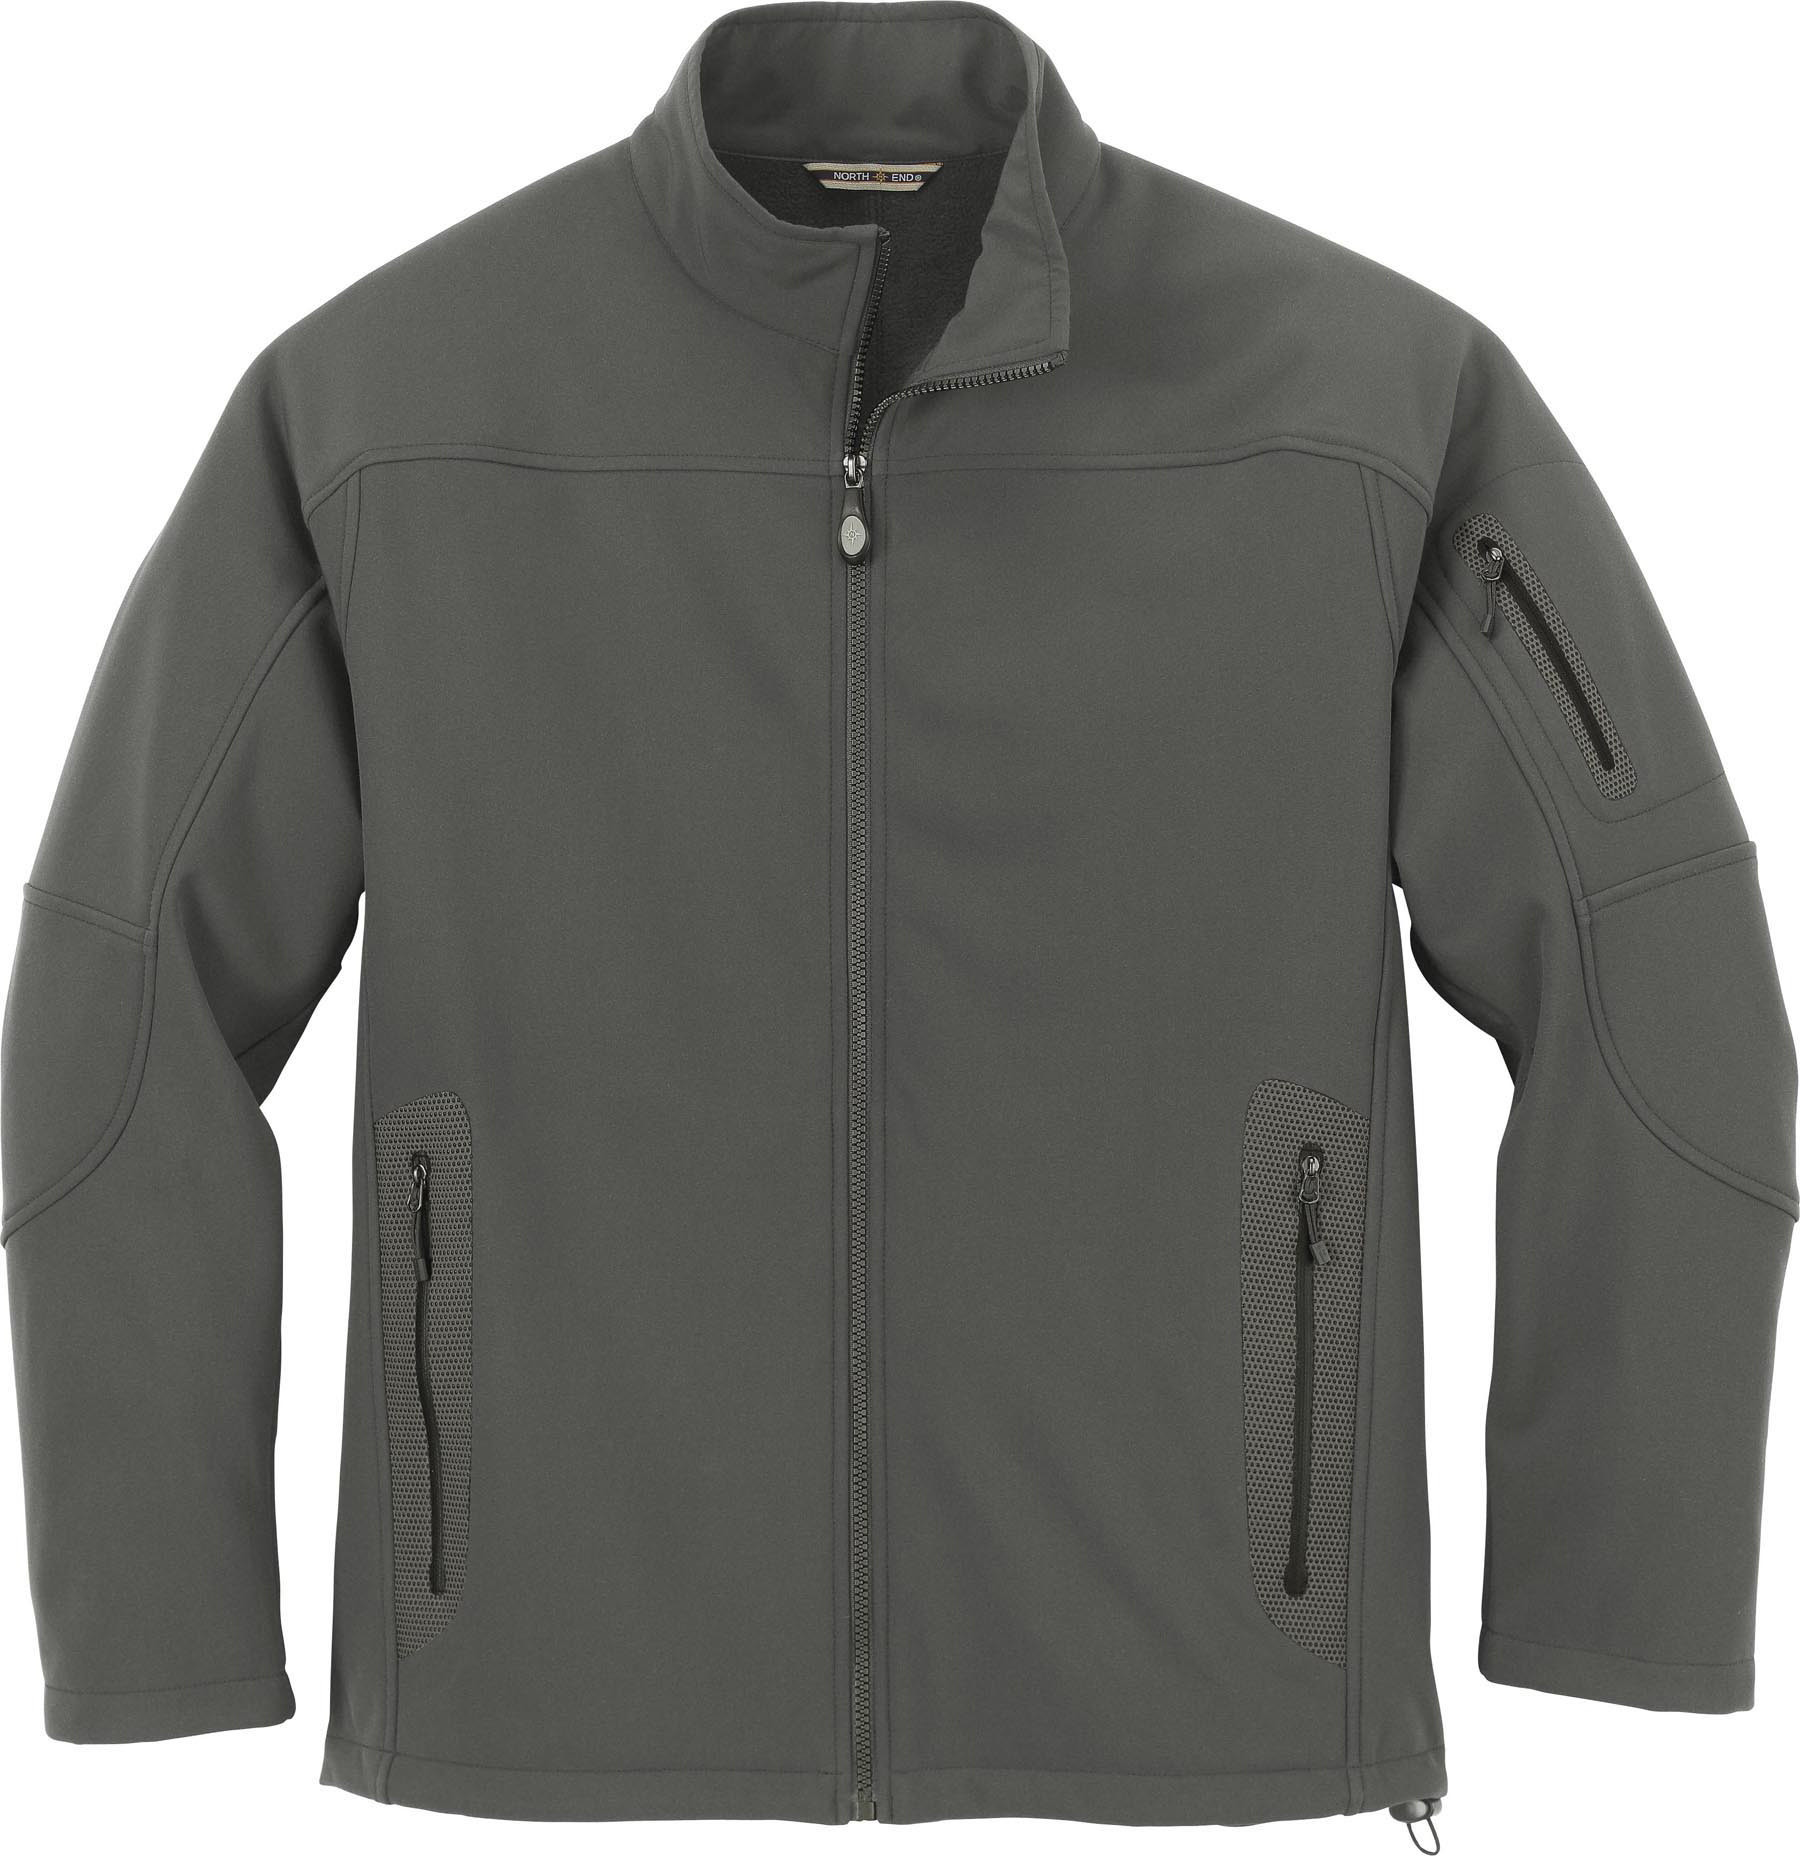 Ash City UTK 1 Warm.Logik 88138 - Men's Soft Shell Technical ...